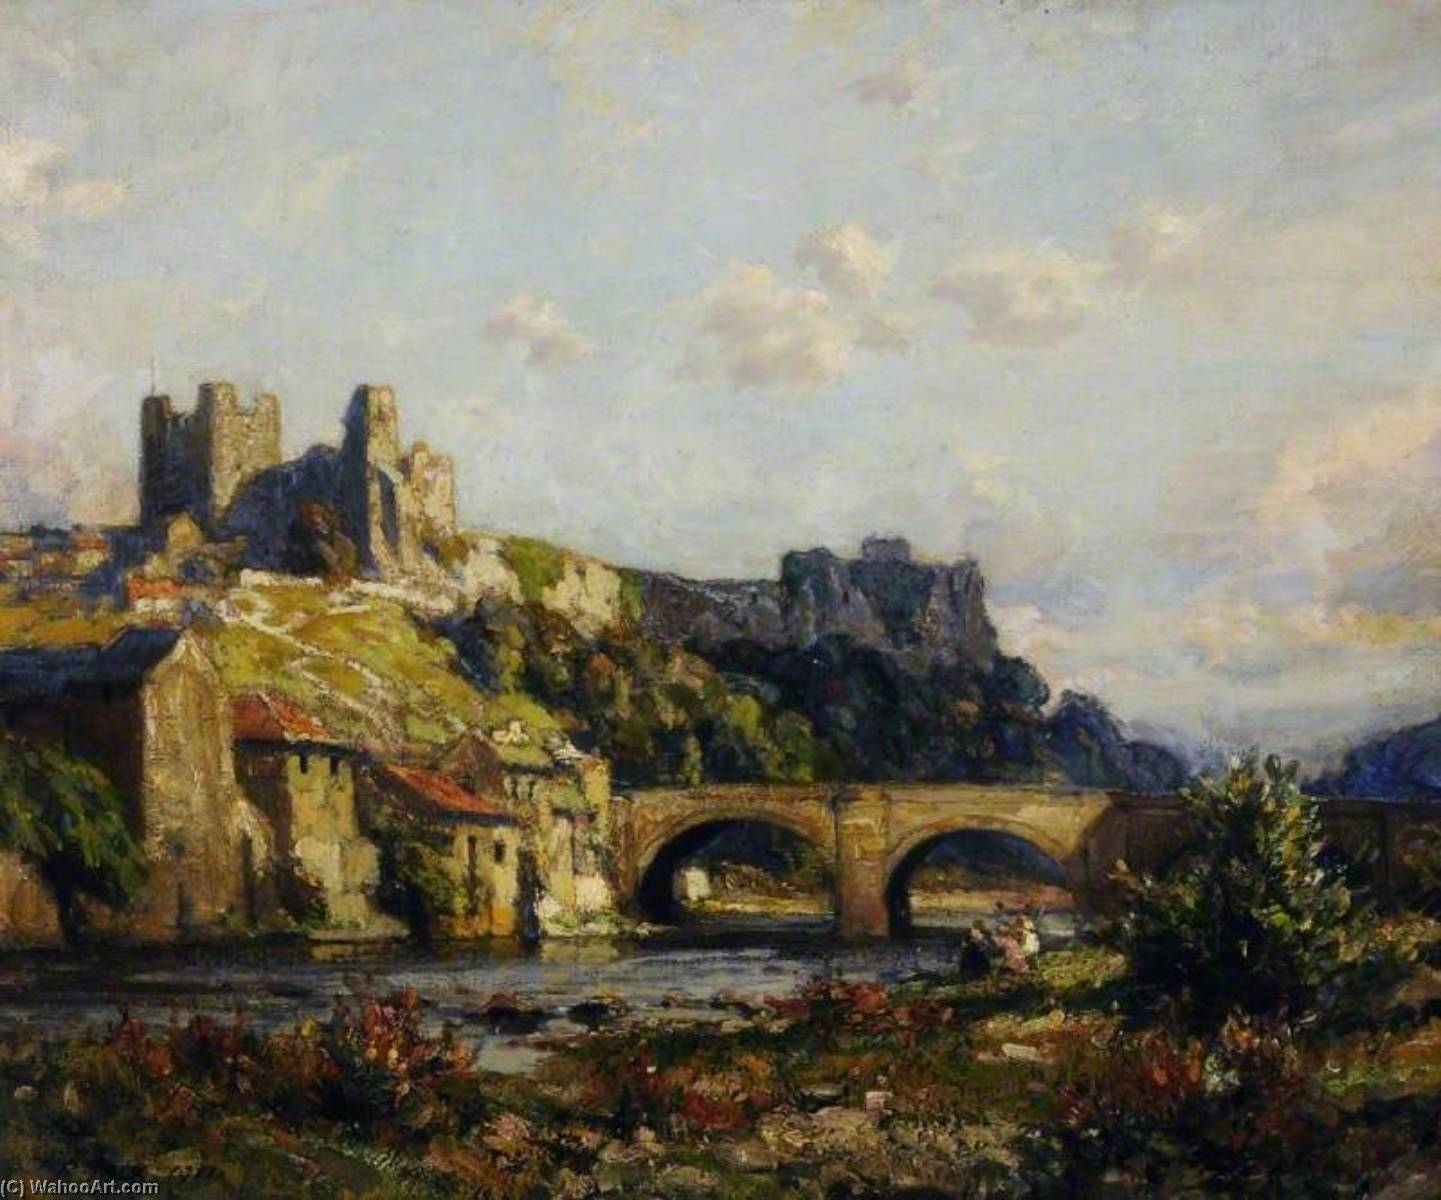 Richmond Castle, North Yorkshire, 1911 by Richard Jack (1866-1952, United Kingdom) | Famous Paintings Reproductions | WahooArt.com